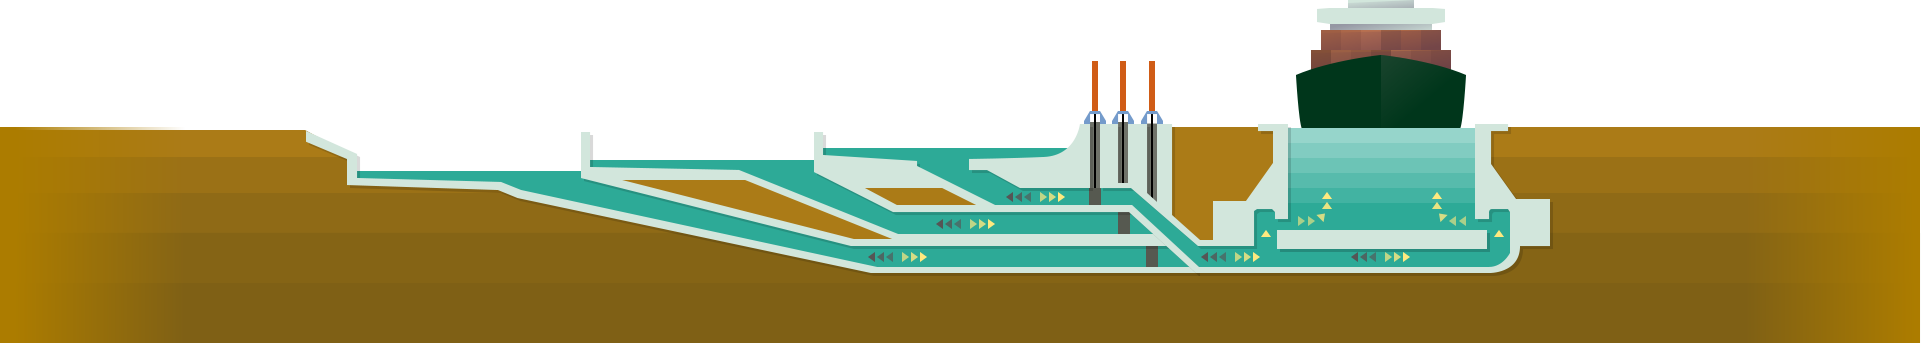 Illustration of boat in canal